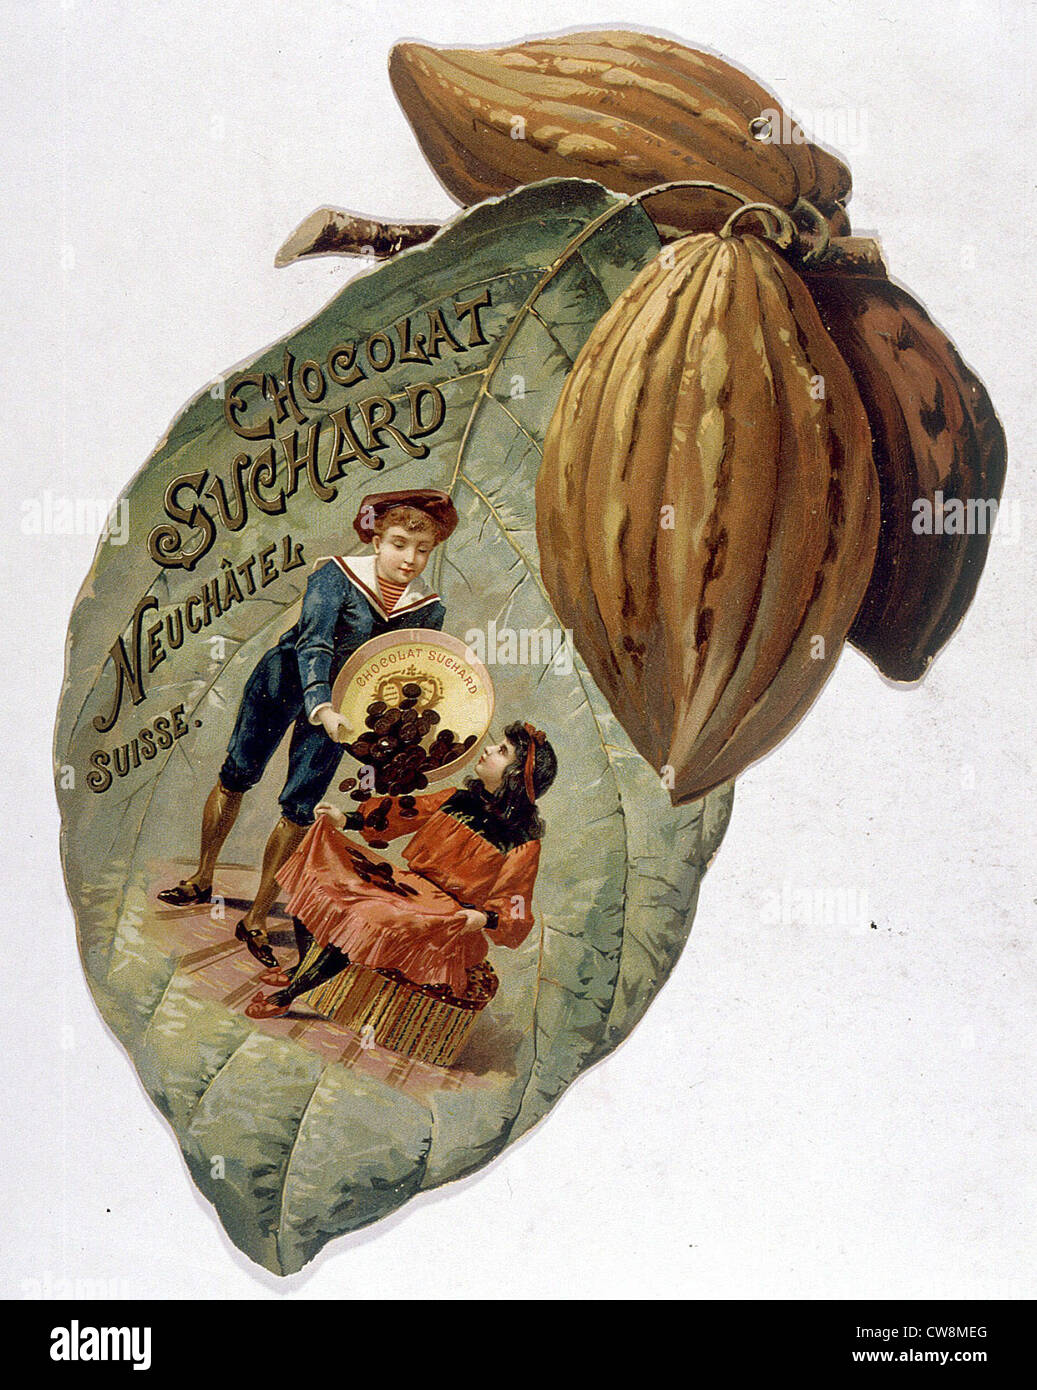 Suchard Chocolate, 19th century advertisement - Stock Image